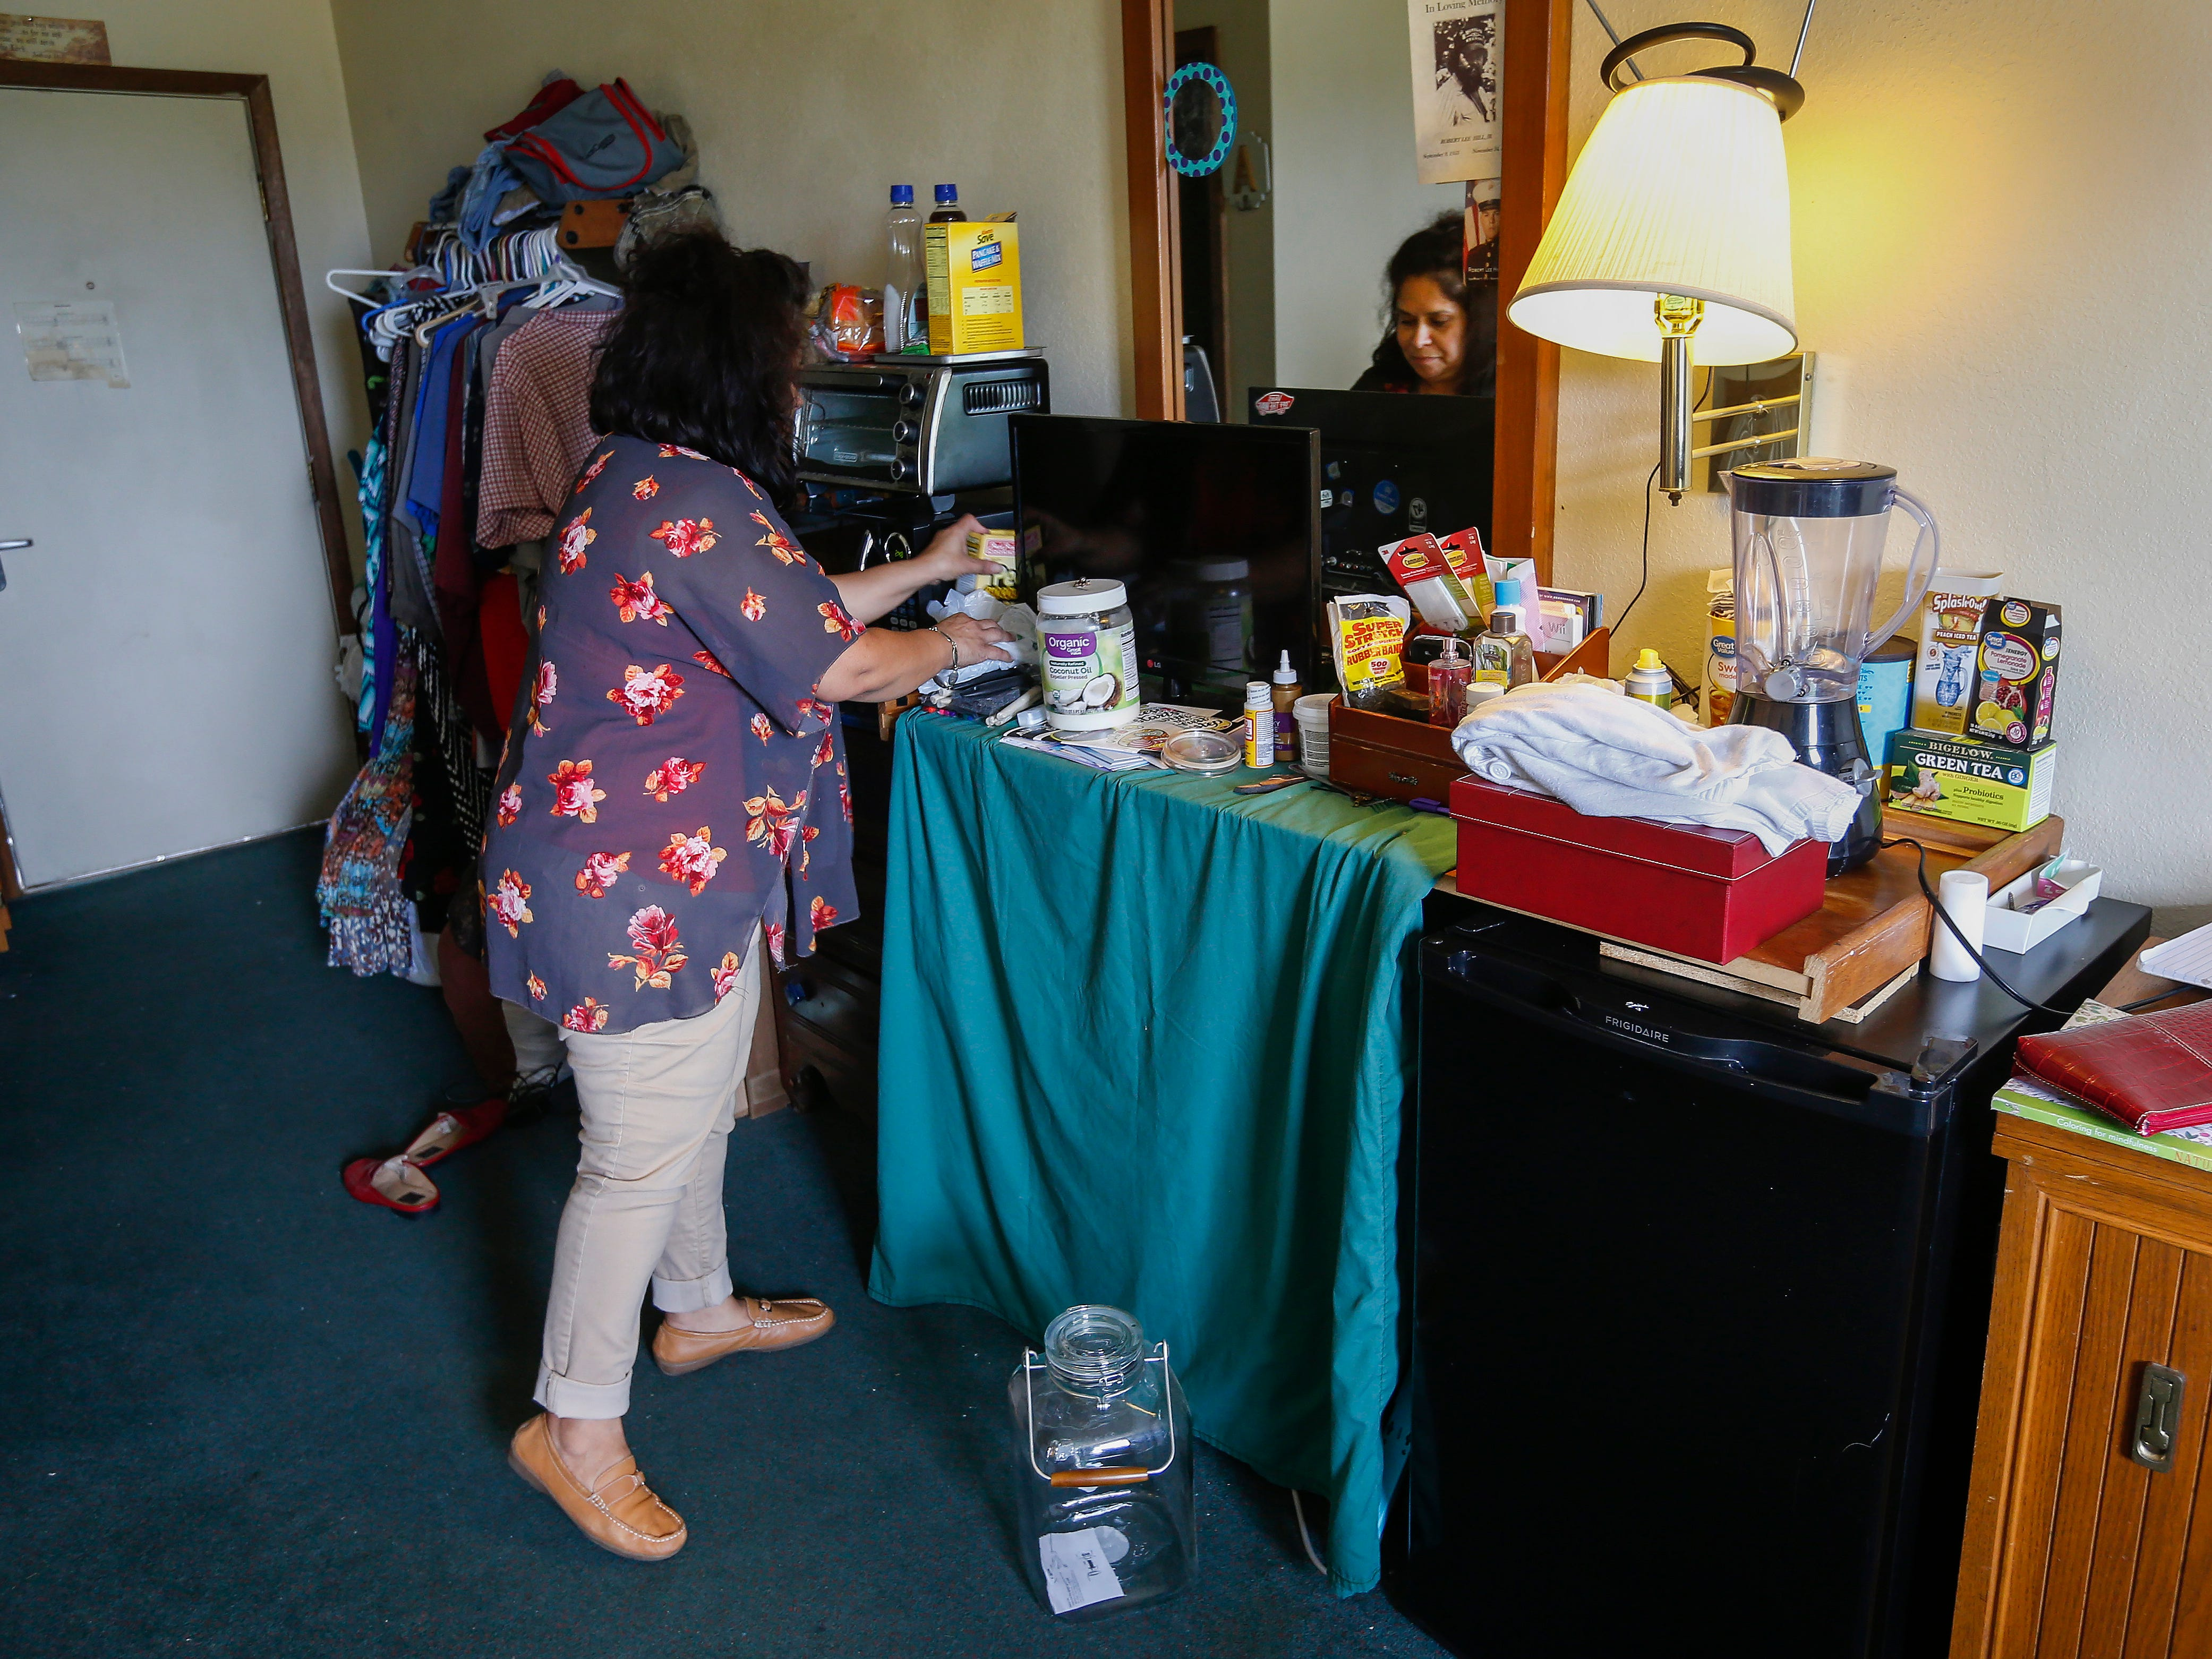 Chrystal Ketterman straightens up inside of her room at the extended stay hotel she is living in in Branson on Monday, July 30, 2018.